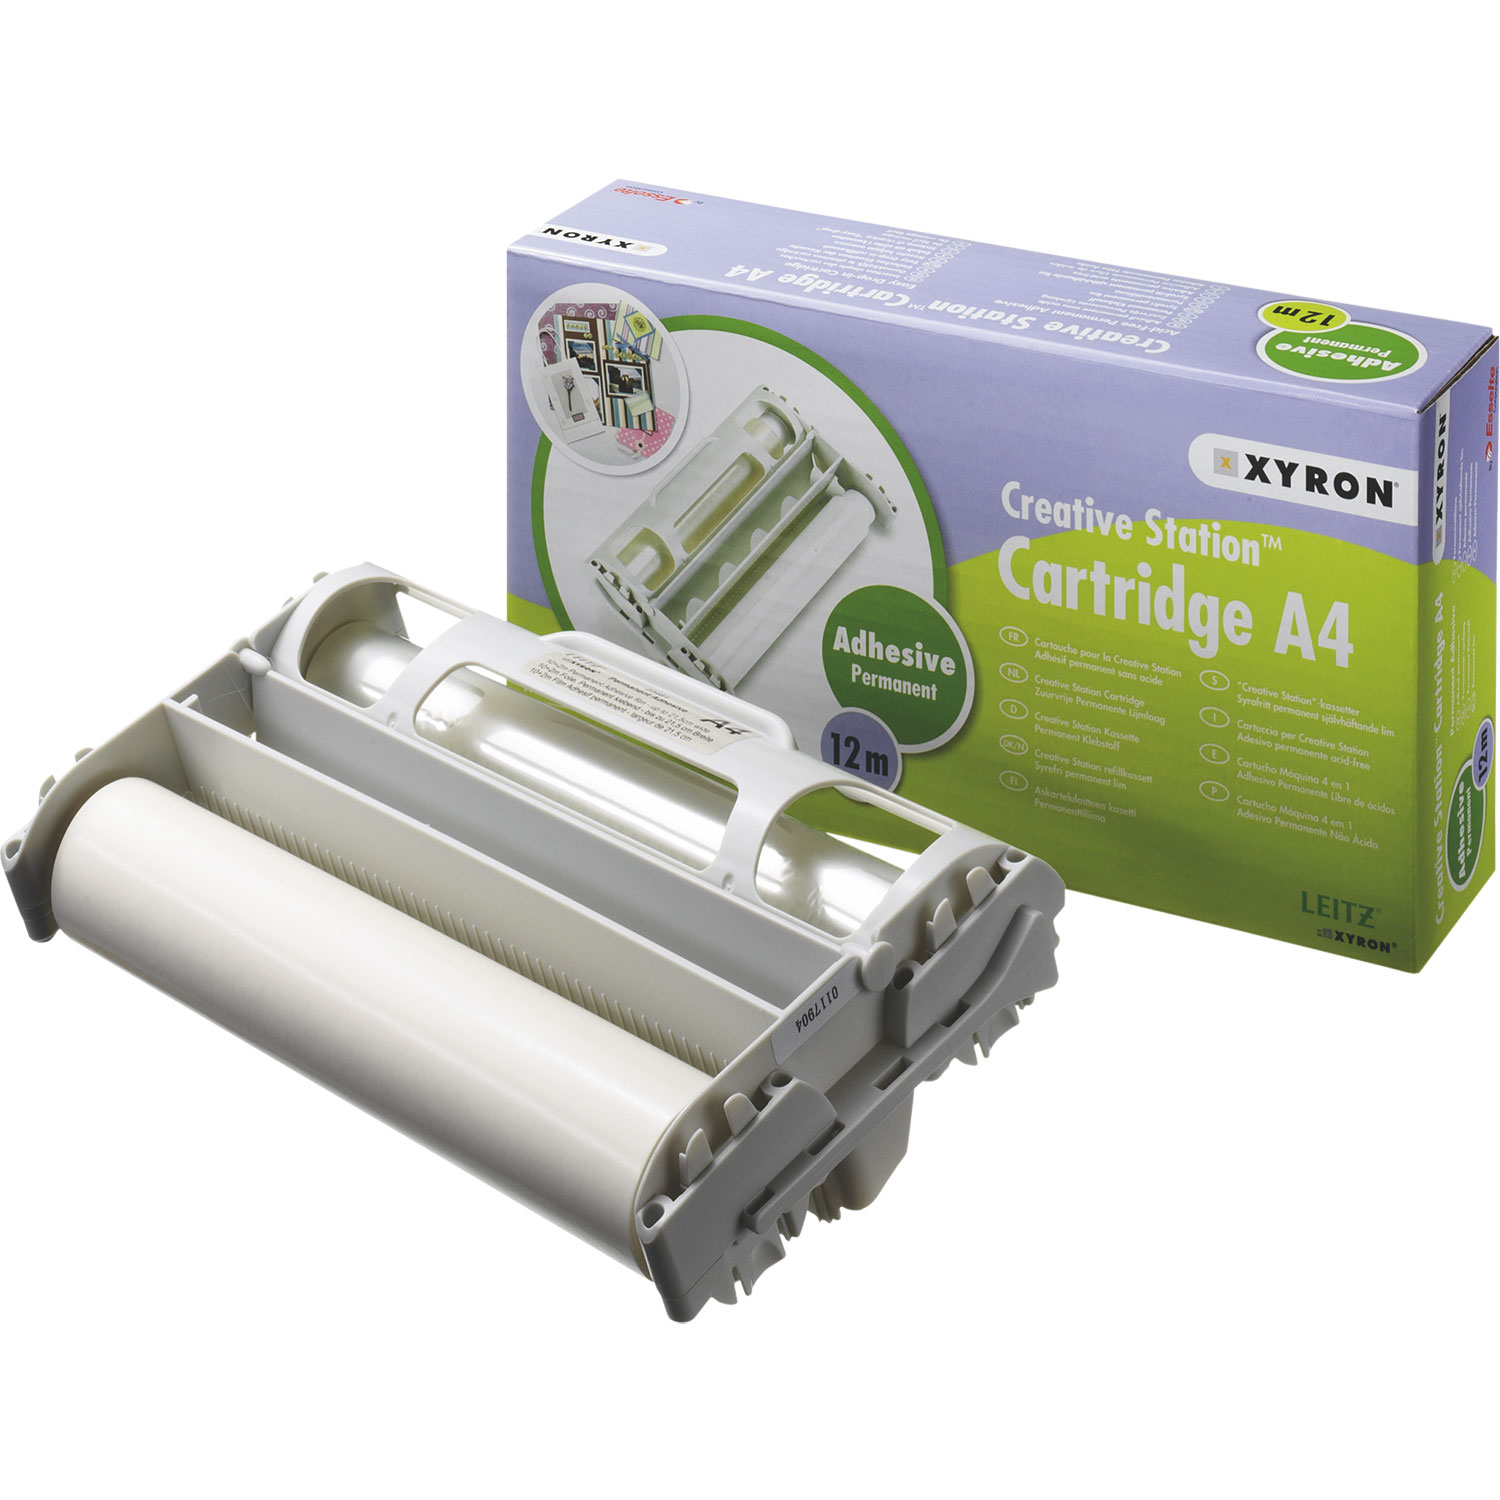 Xyron Pro 850 Permanent Adhesive Cartridge 624170/23461